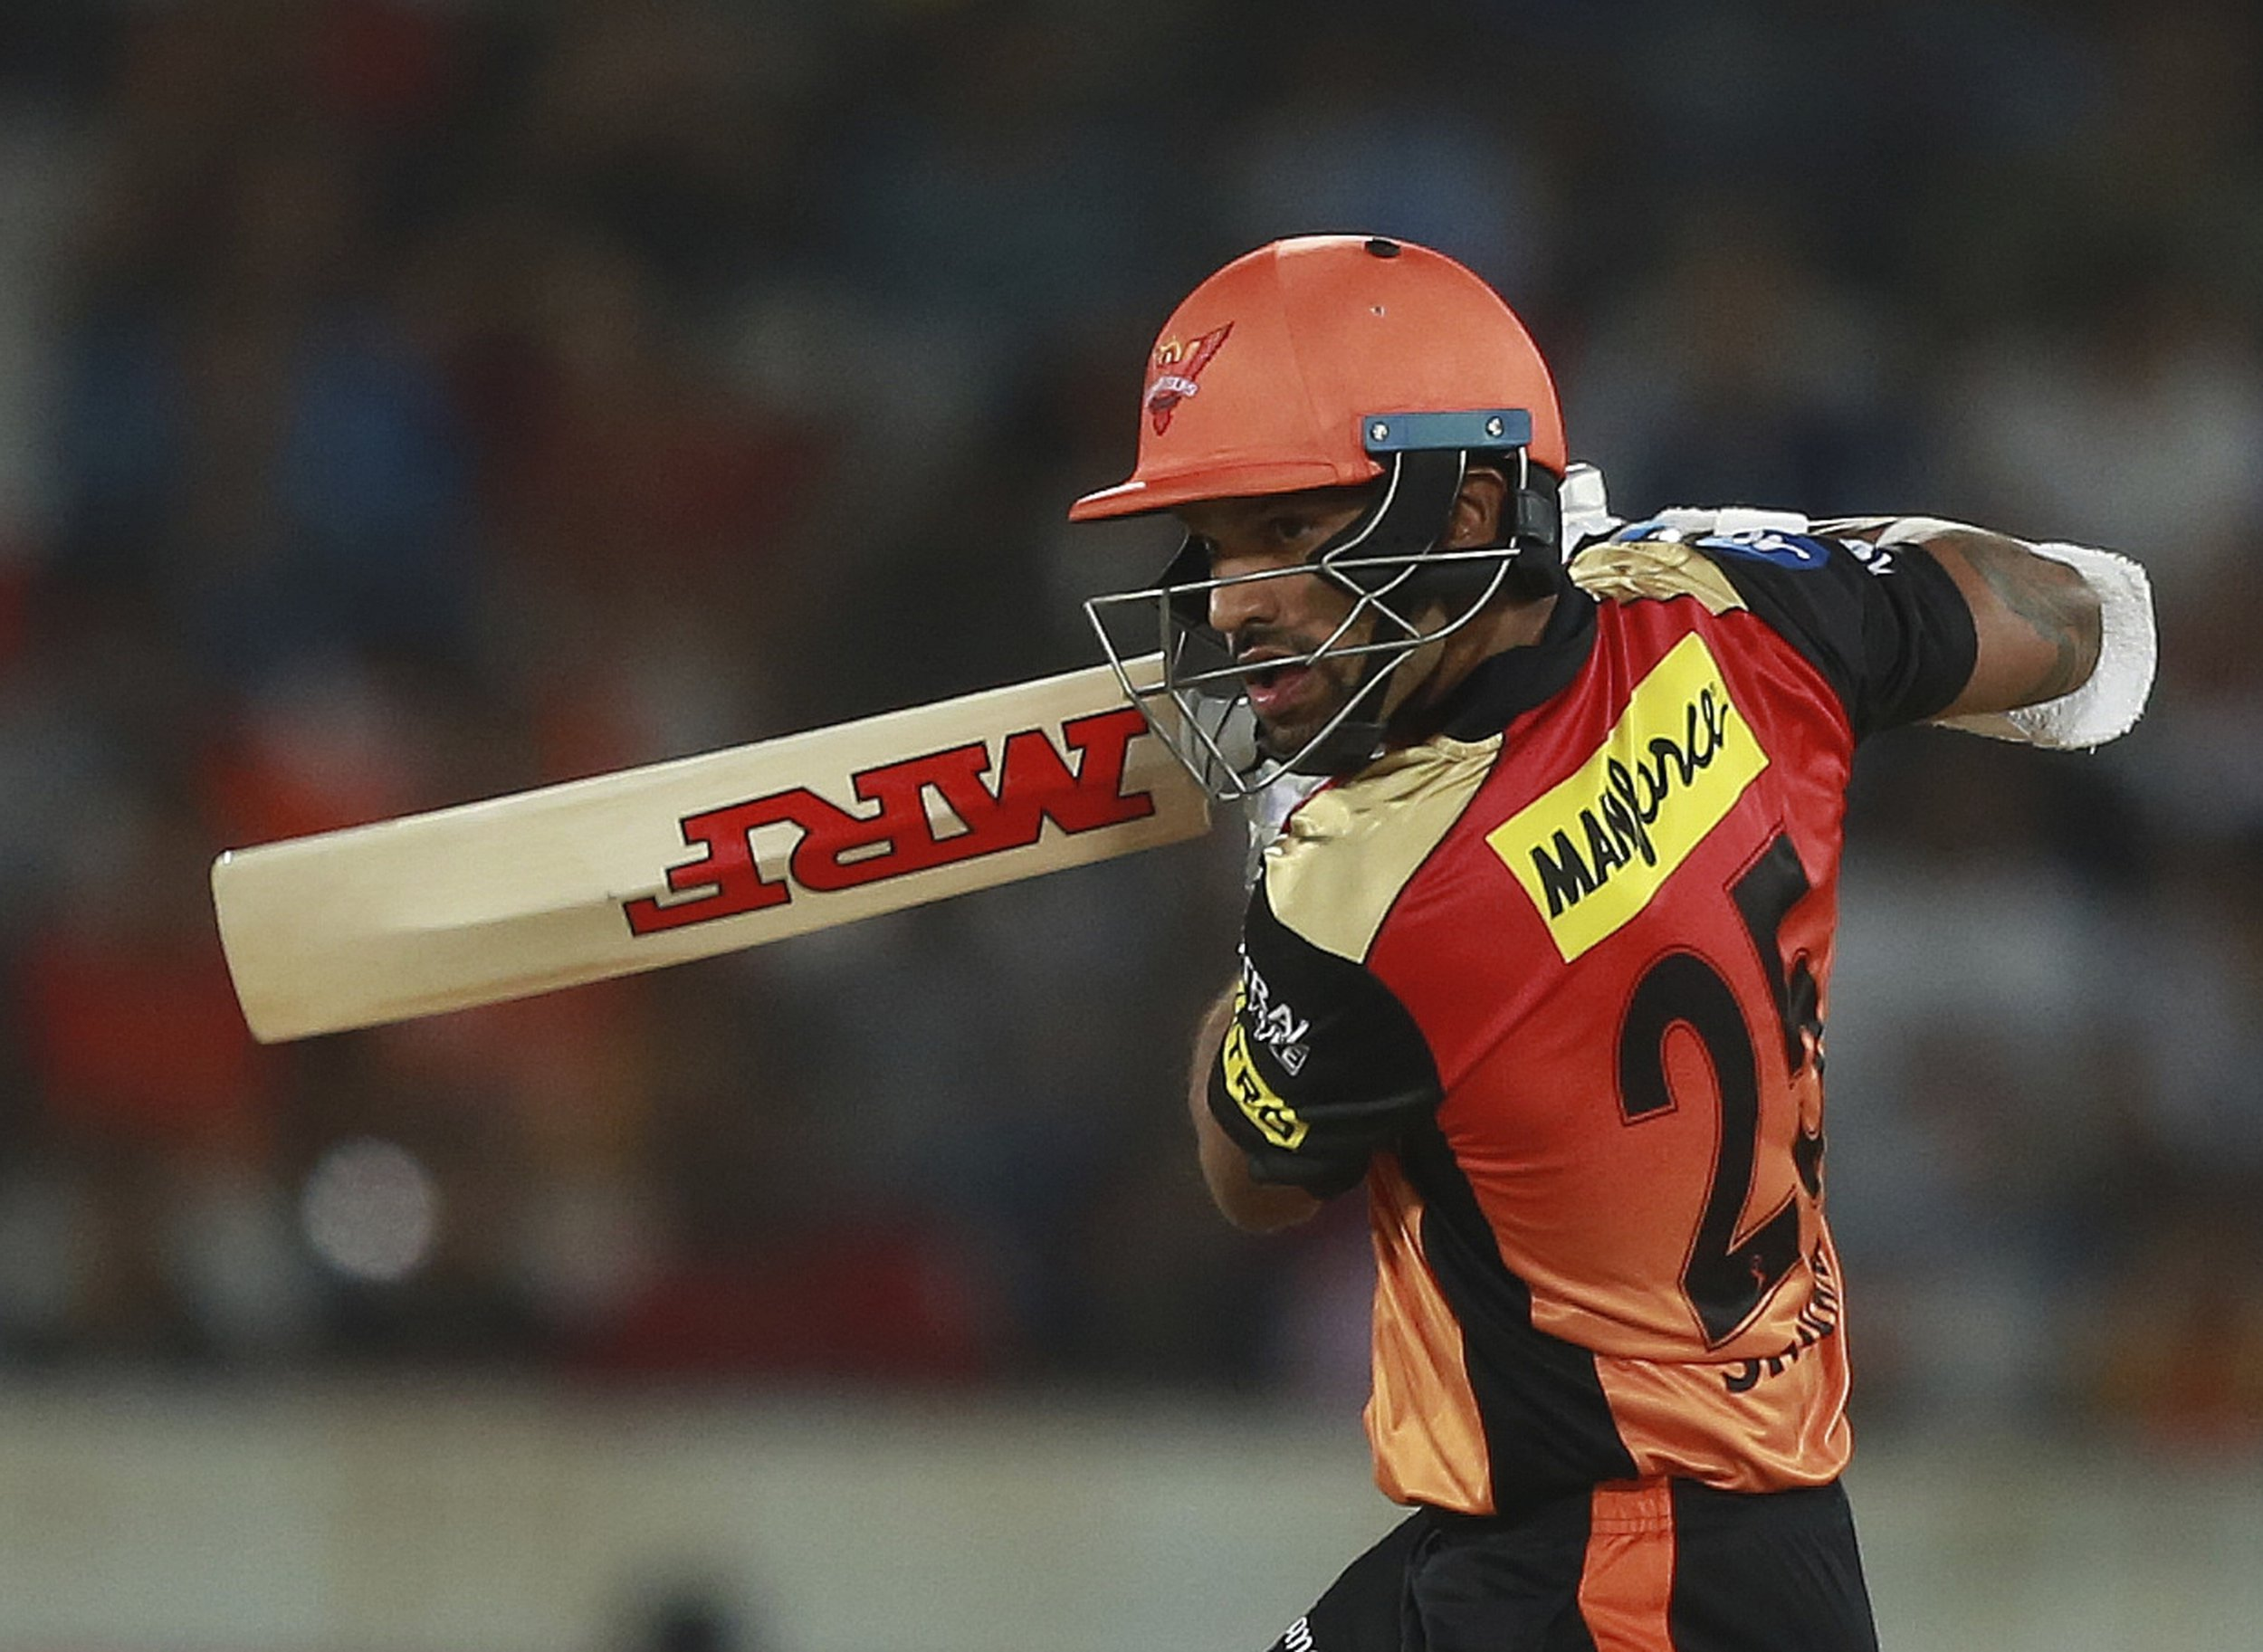 Chennai Super Kings v Sunrisers Hyderabad betting preview: Shikhar Dhawan can shine against MS Dhoni's charge